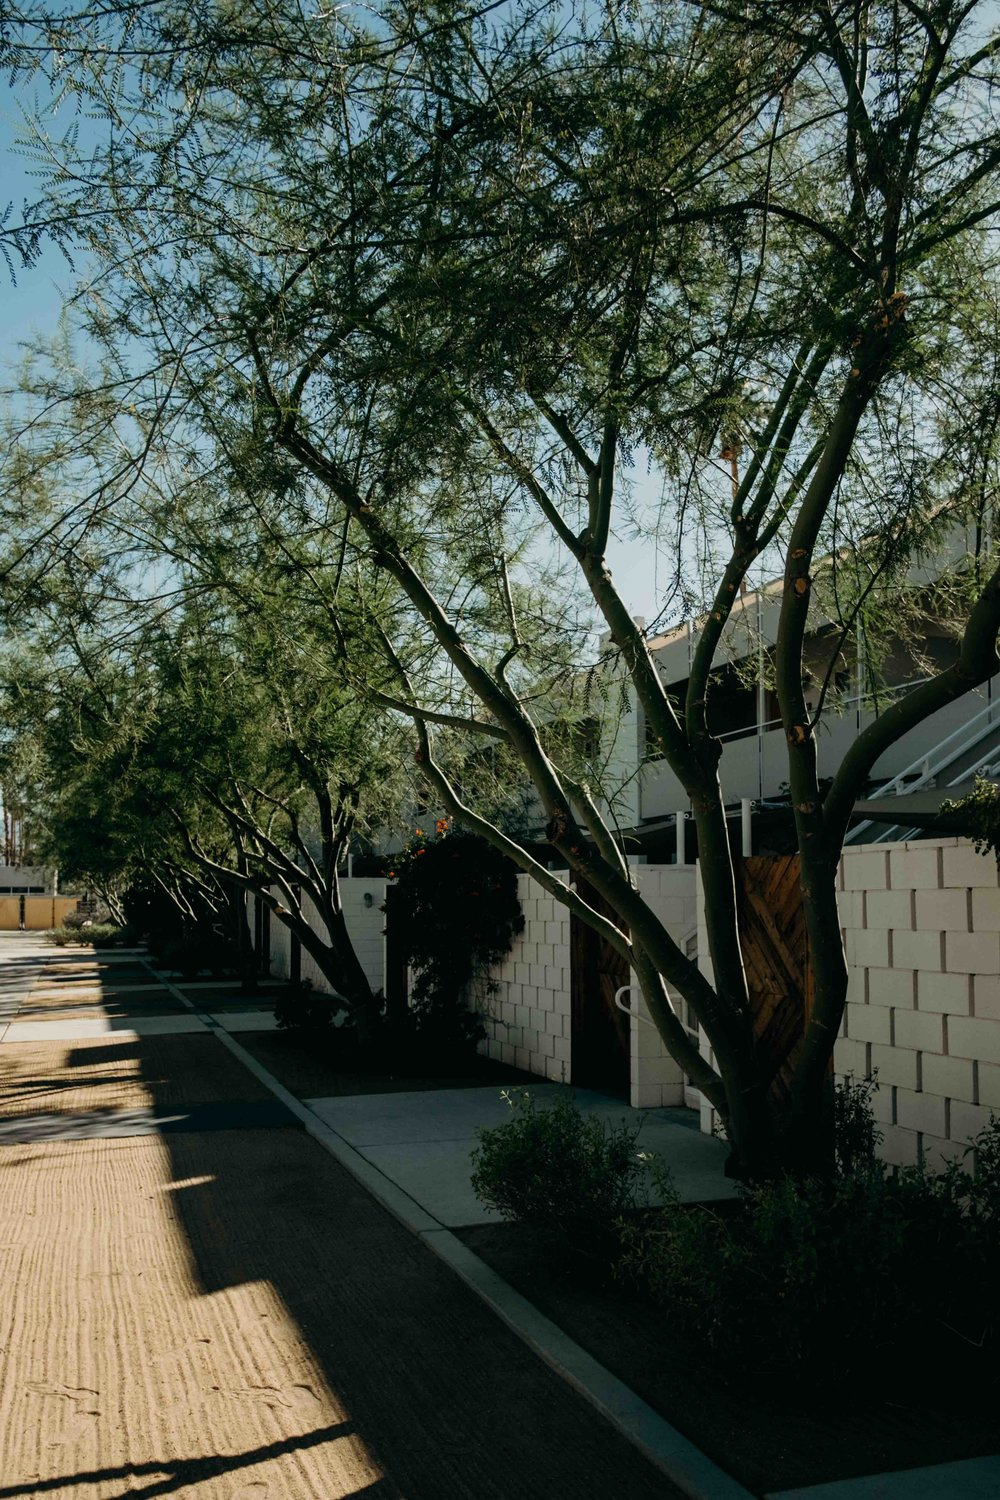 20171004_Palm Springs Travel Guide_15.jpg